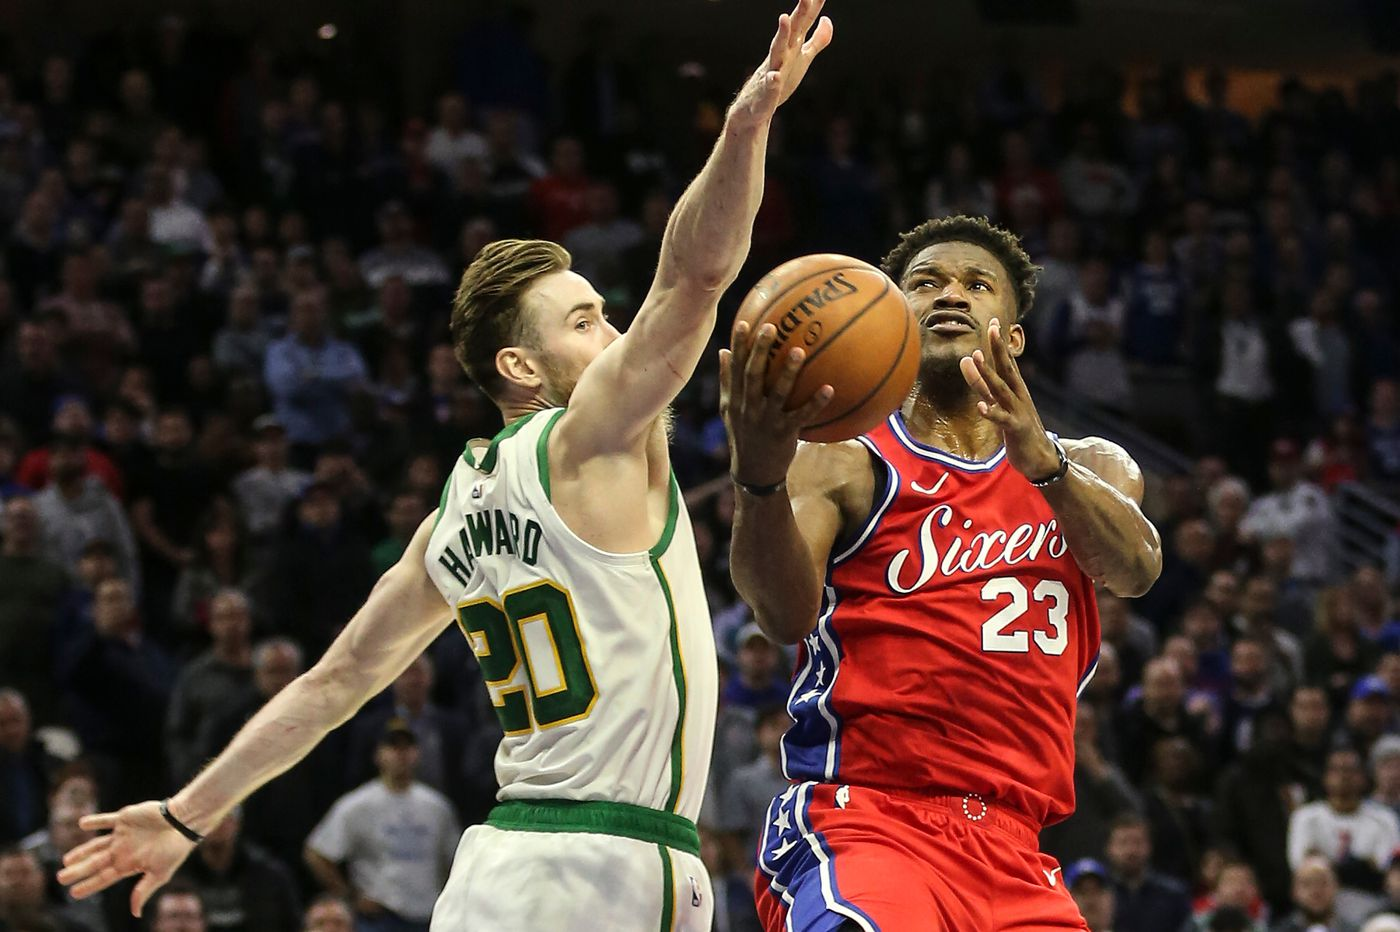 Sixers' depth against Celtics was lacking, but Jimmy Butler shows why the team needs him here | David Murphy